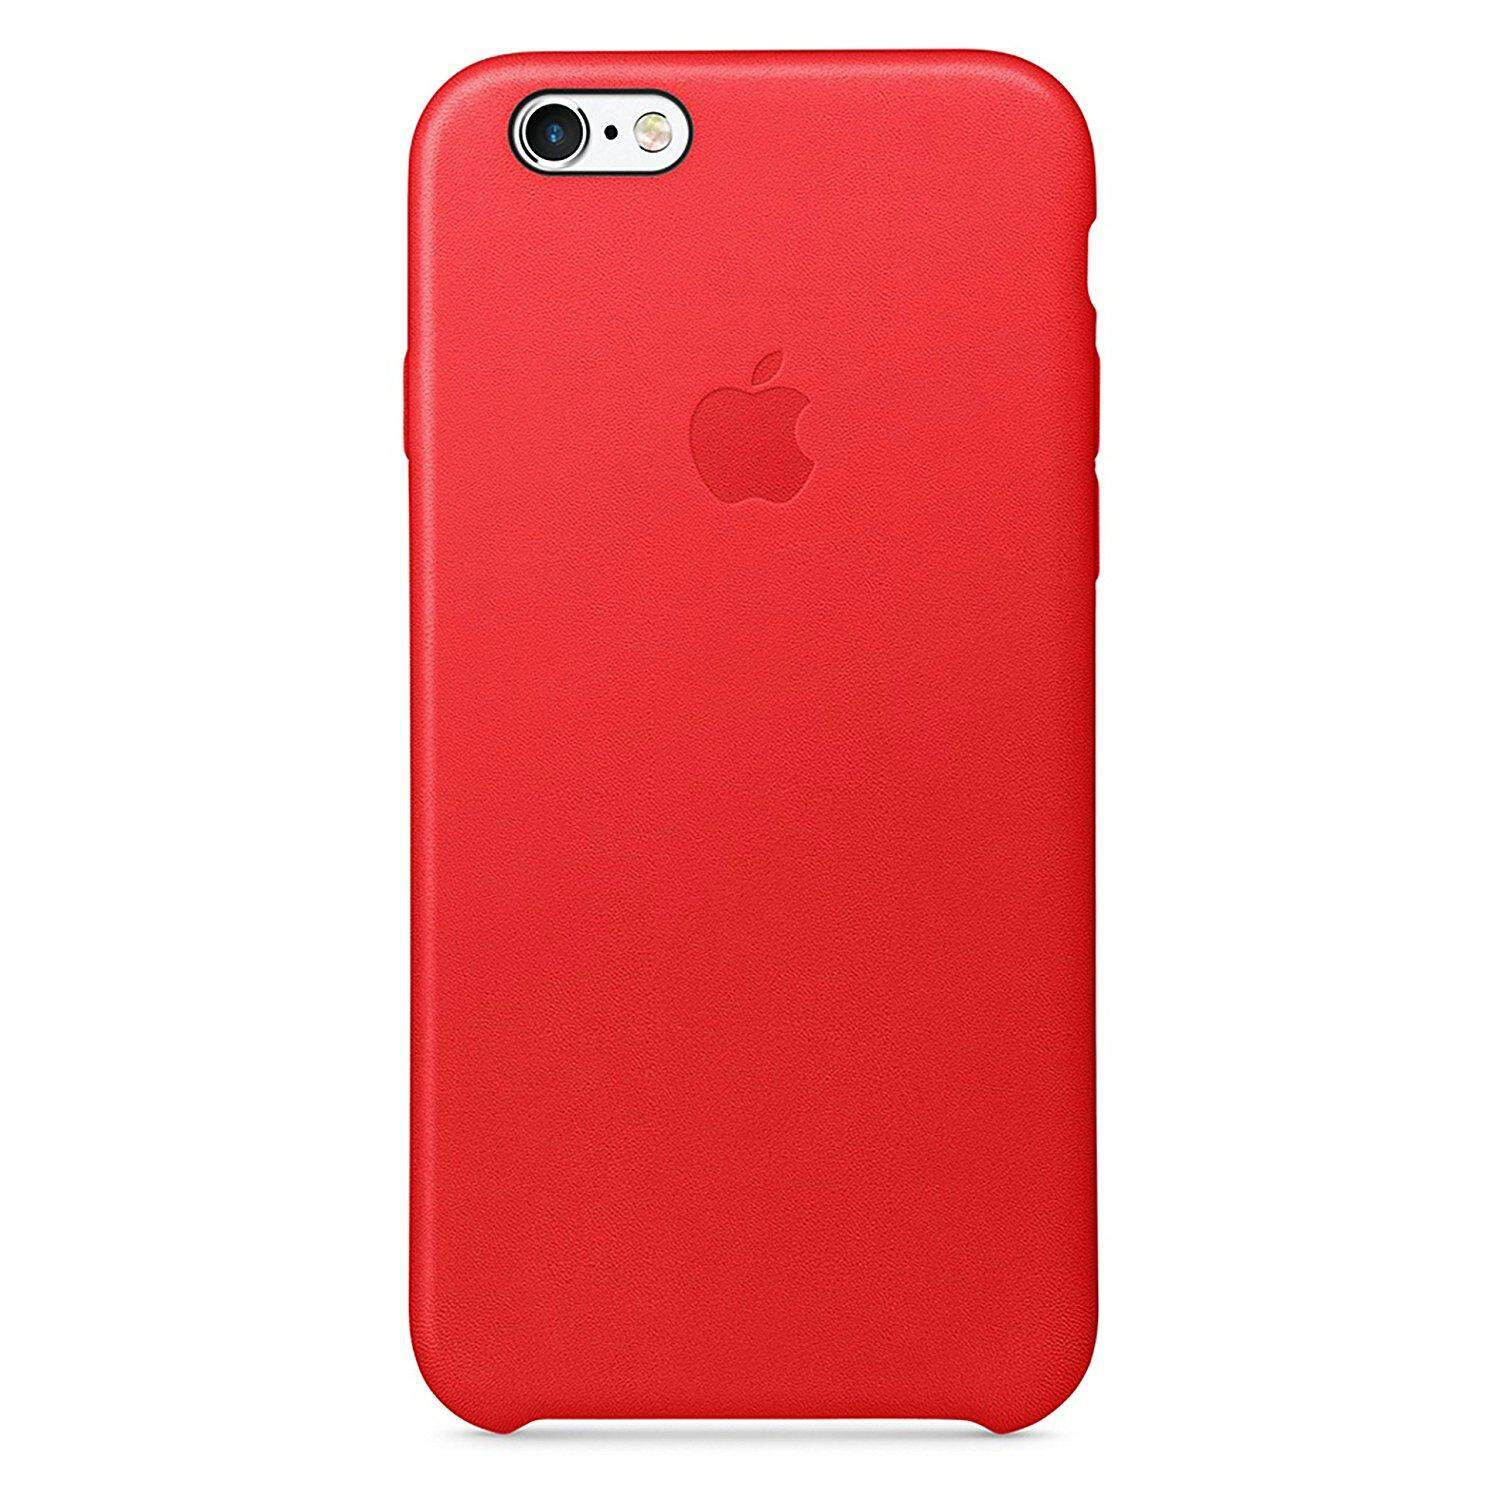 Cek Harga High Quality Premium Leather Case For Apple Iphone 7 Red